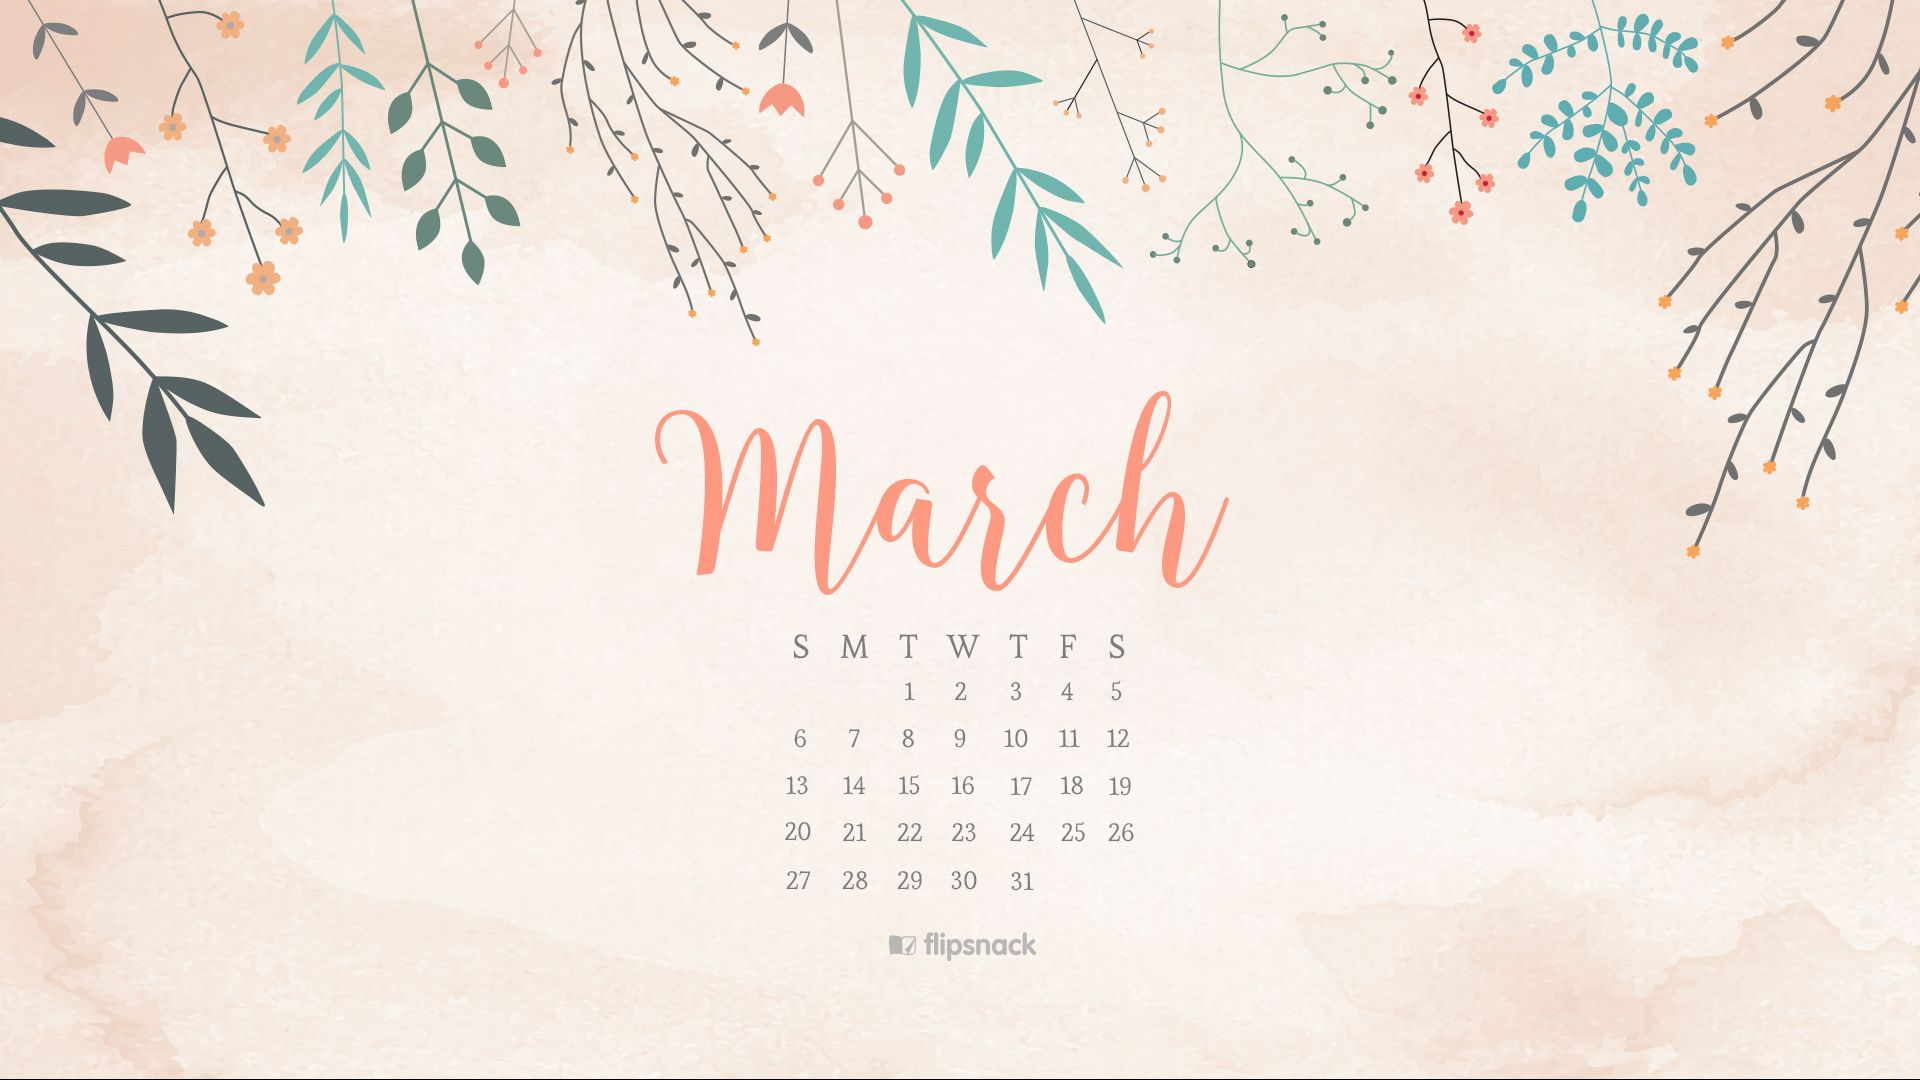 free march calendar wallpapers oh so lovely blog 1920a—1080 march calendar wallpaper 2017